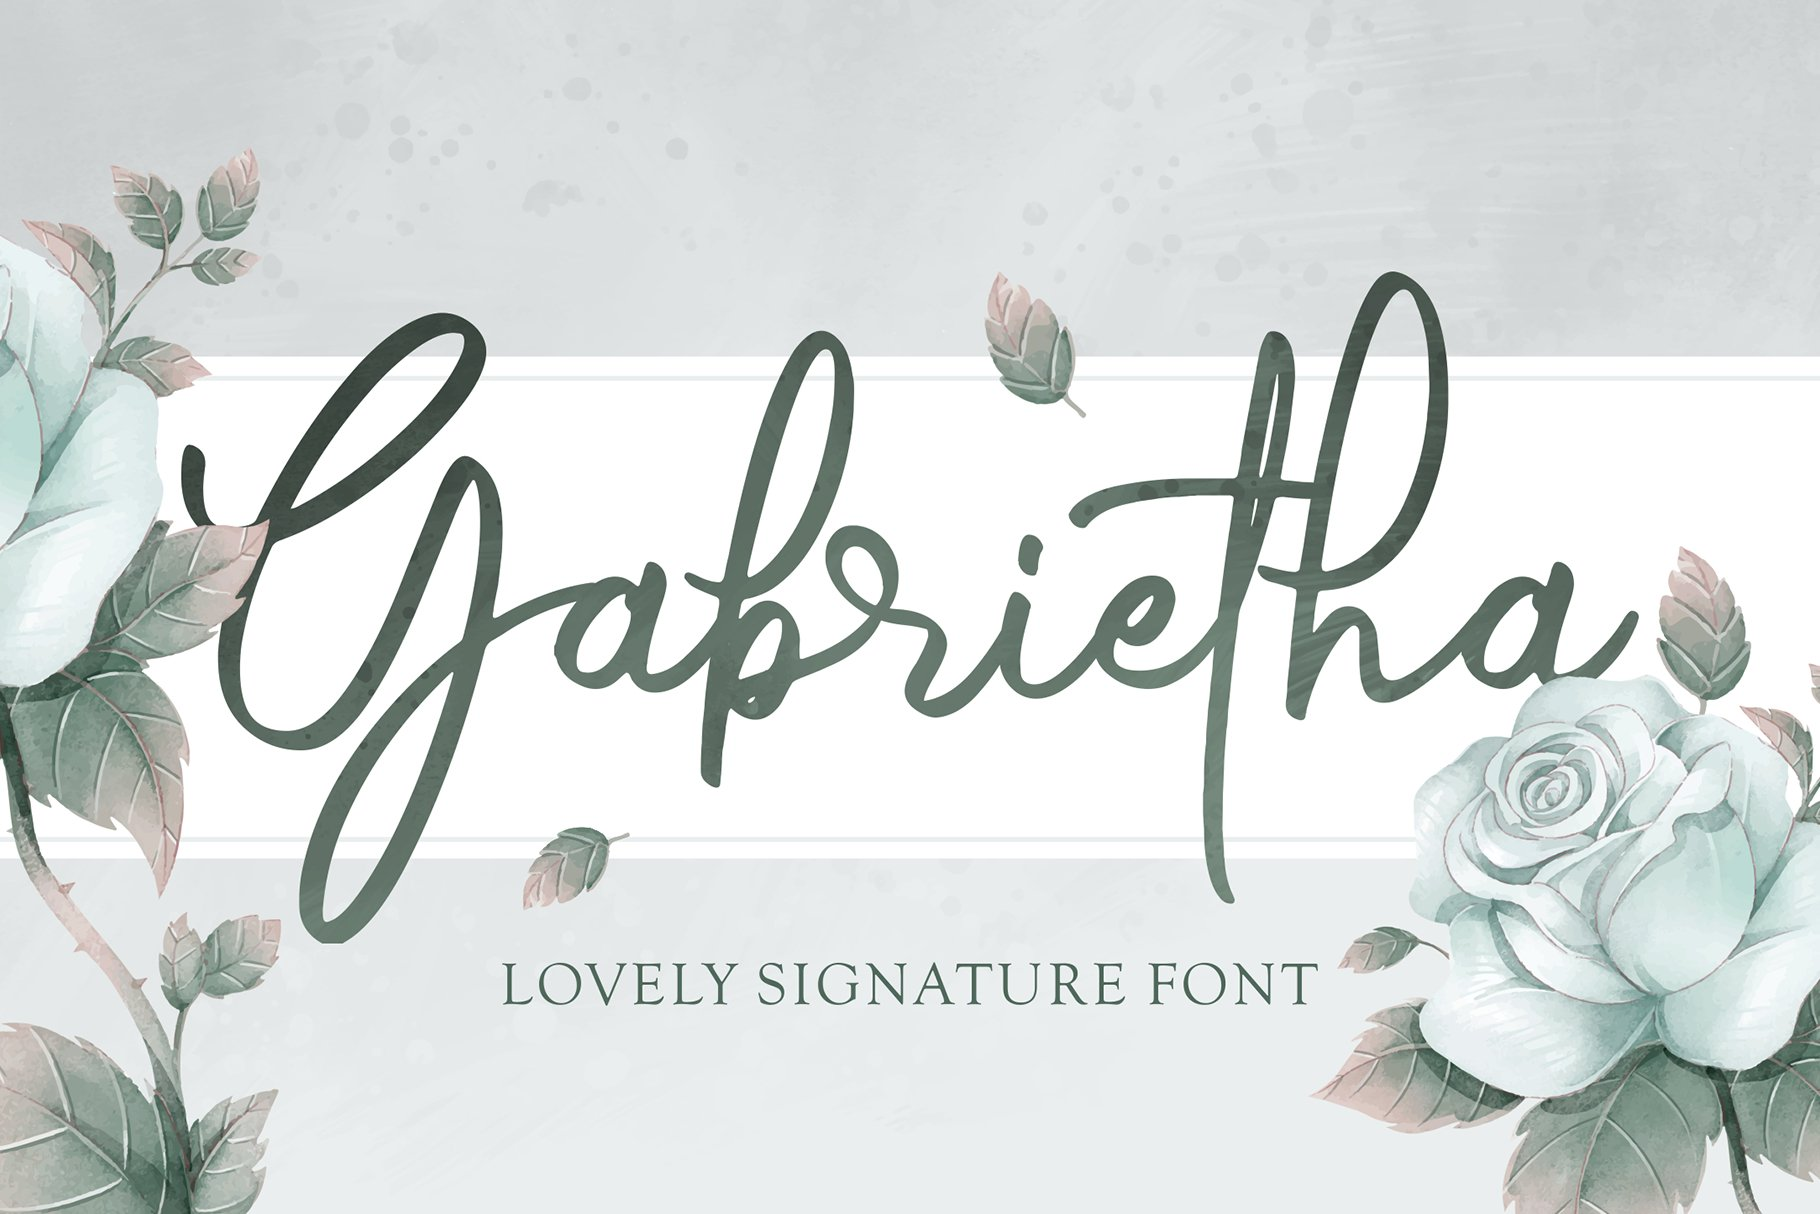 Awesome Crafting Font Bundle Vol. 2 example image 5